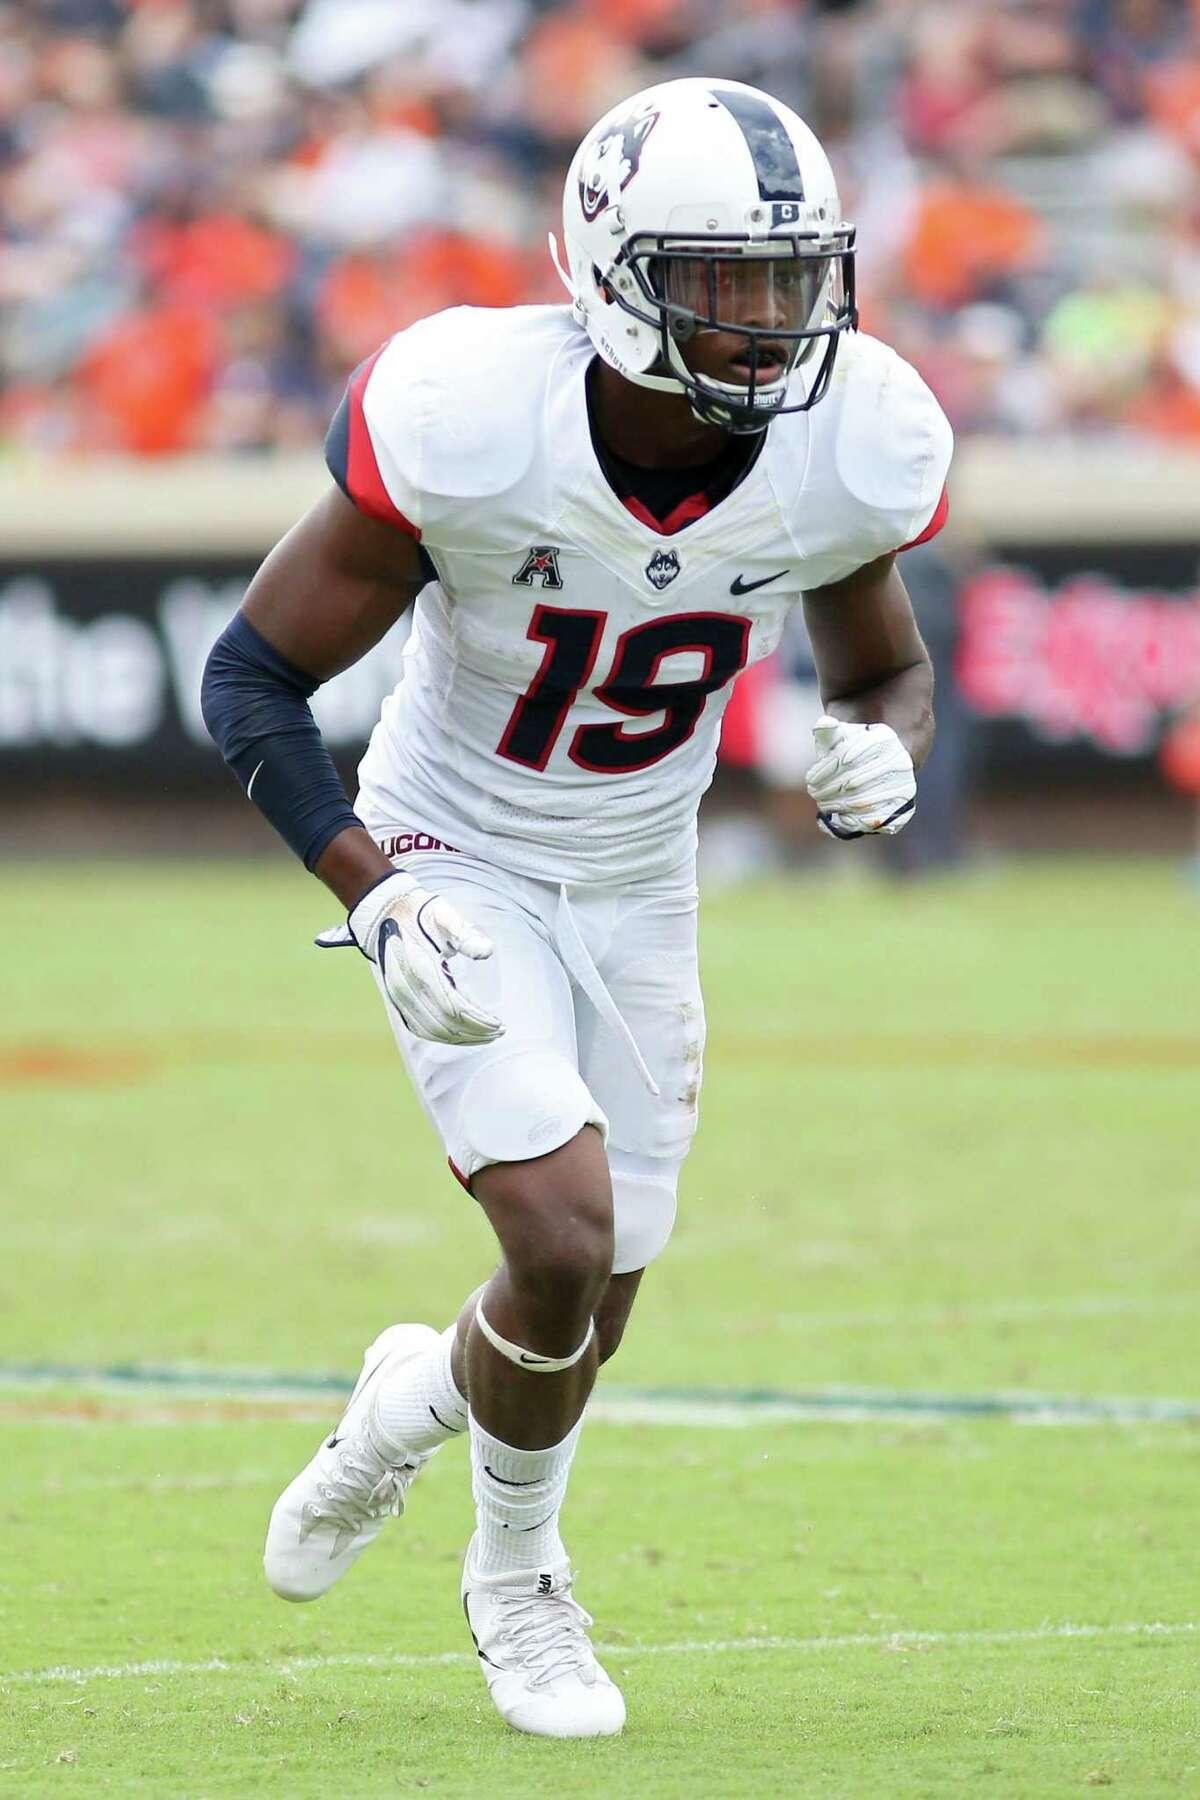 UConn's Quayvon Skanes, who is healthy again, is eager to make up for last time after an injury-riddled 2018 season.